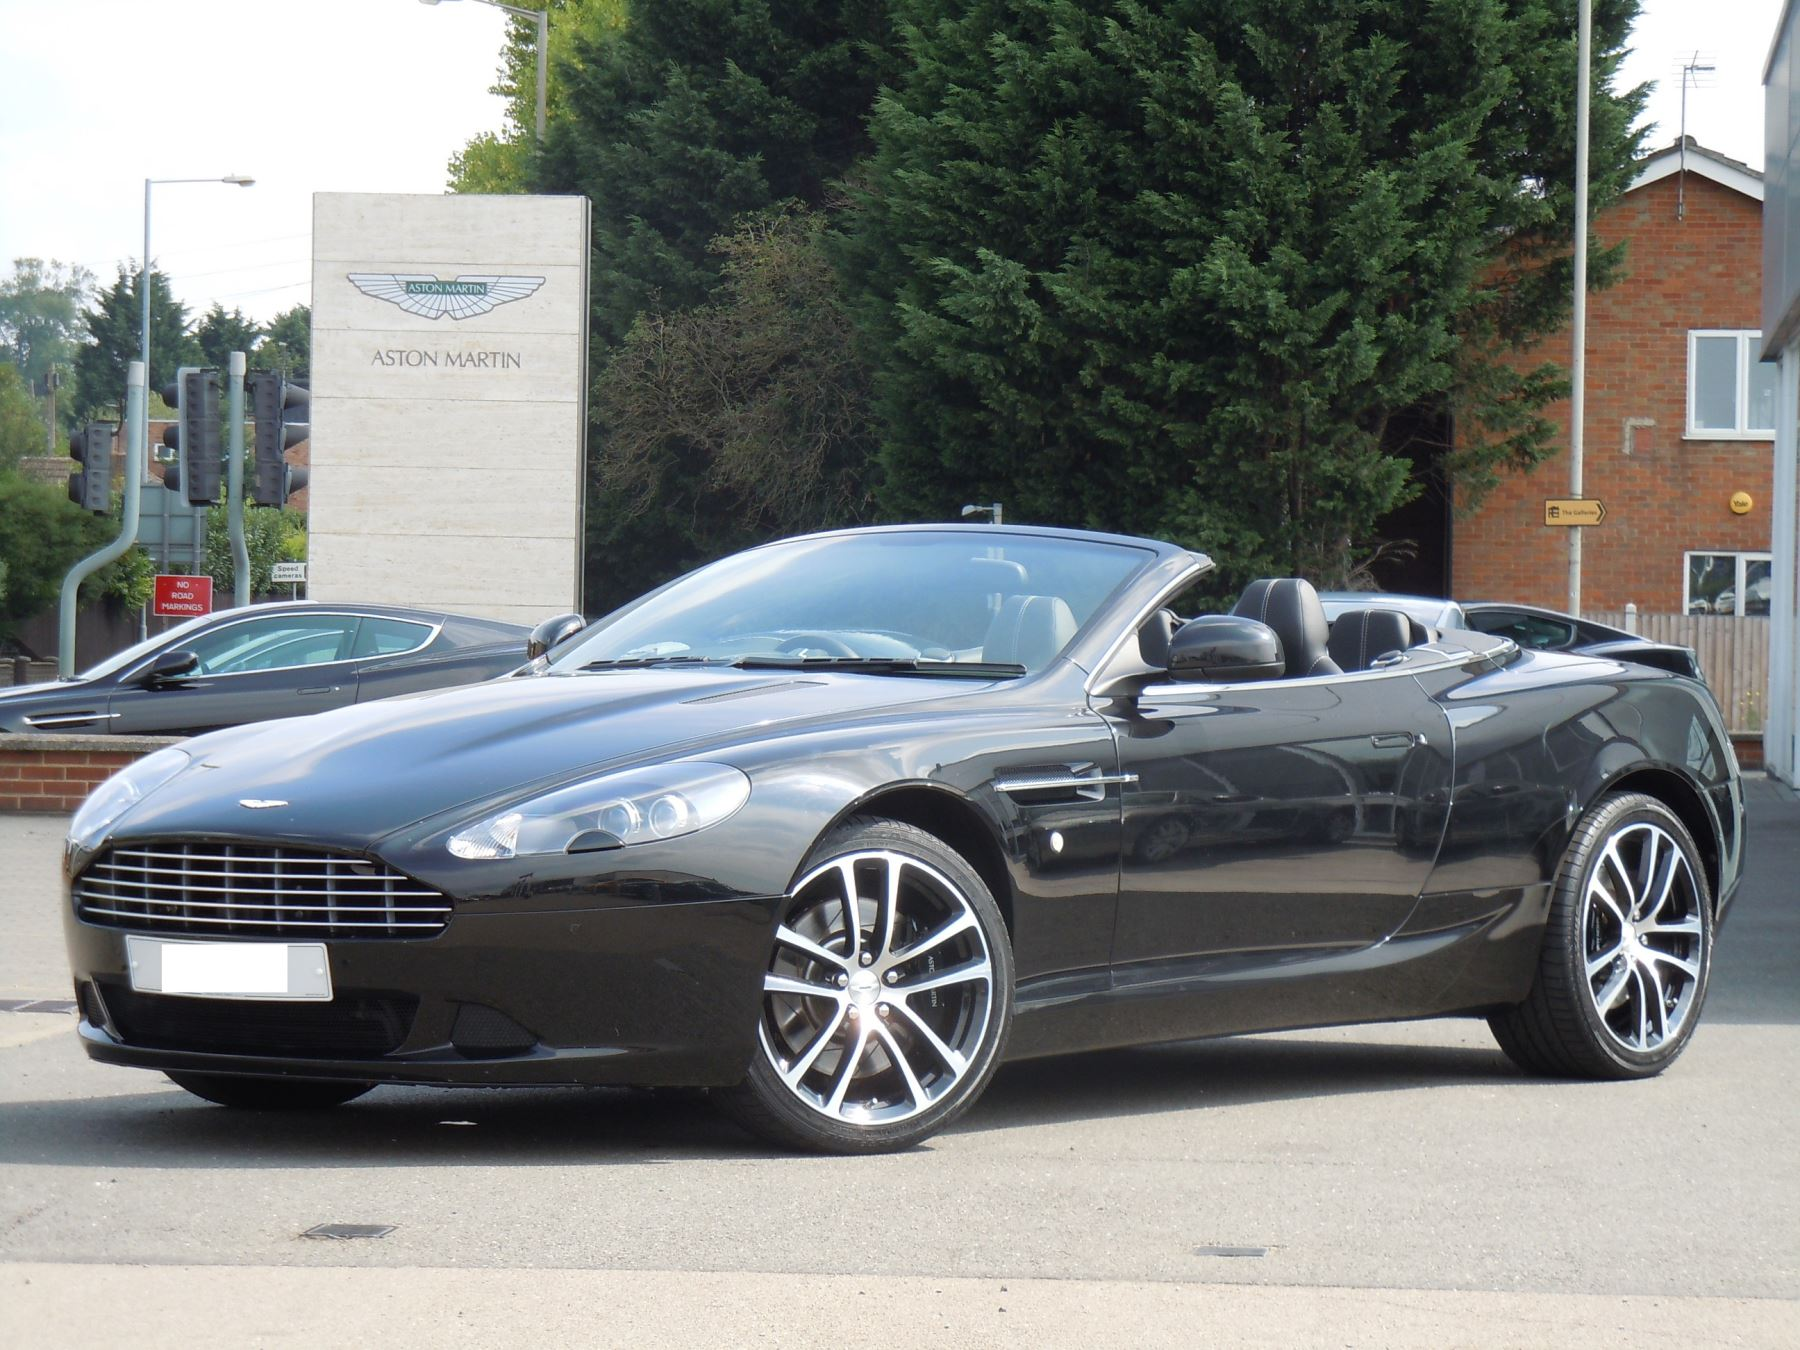 Aston Martin DB9 V12 2dr Volante Touchtronic [470] 5.9 Automatic Convertible (2012)